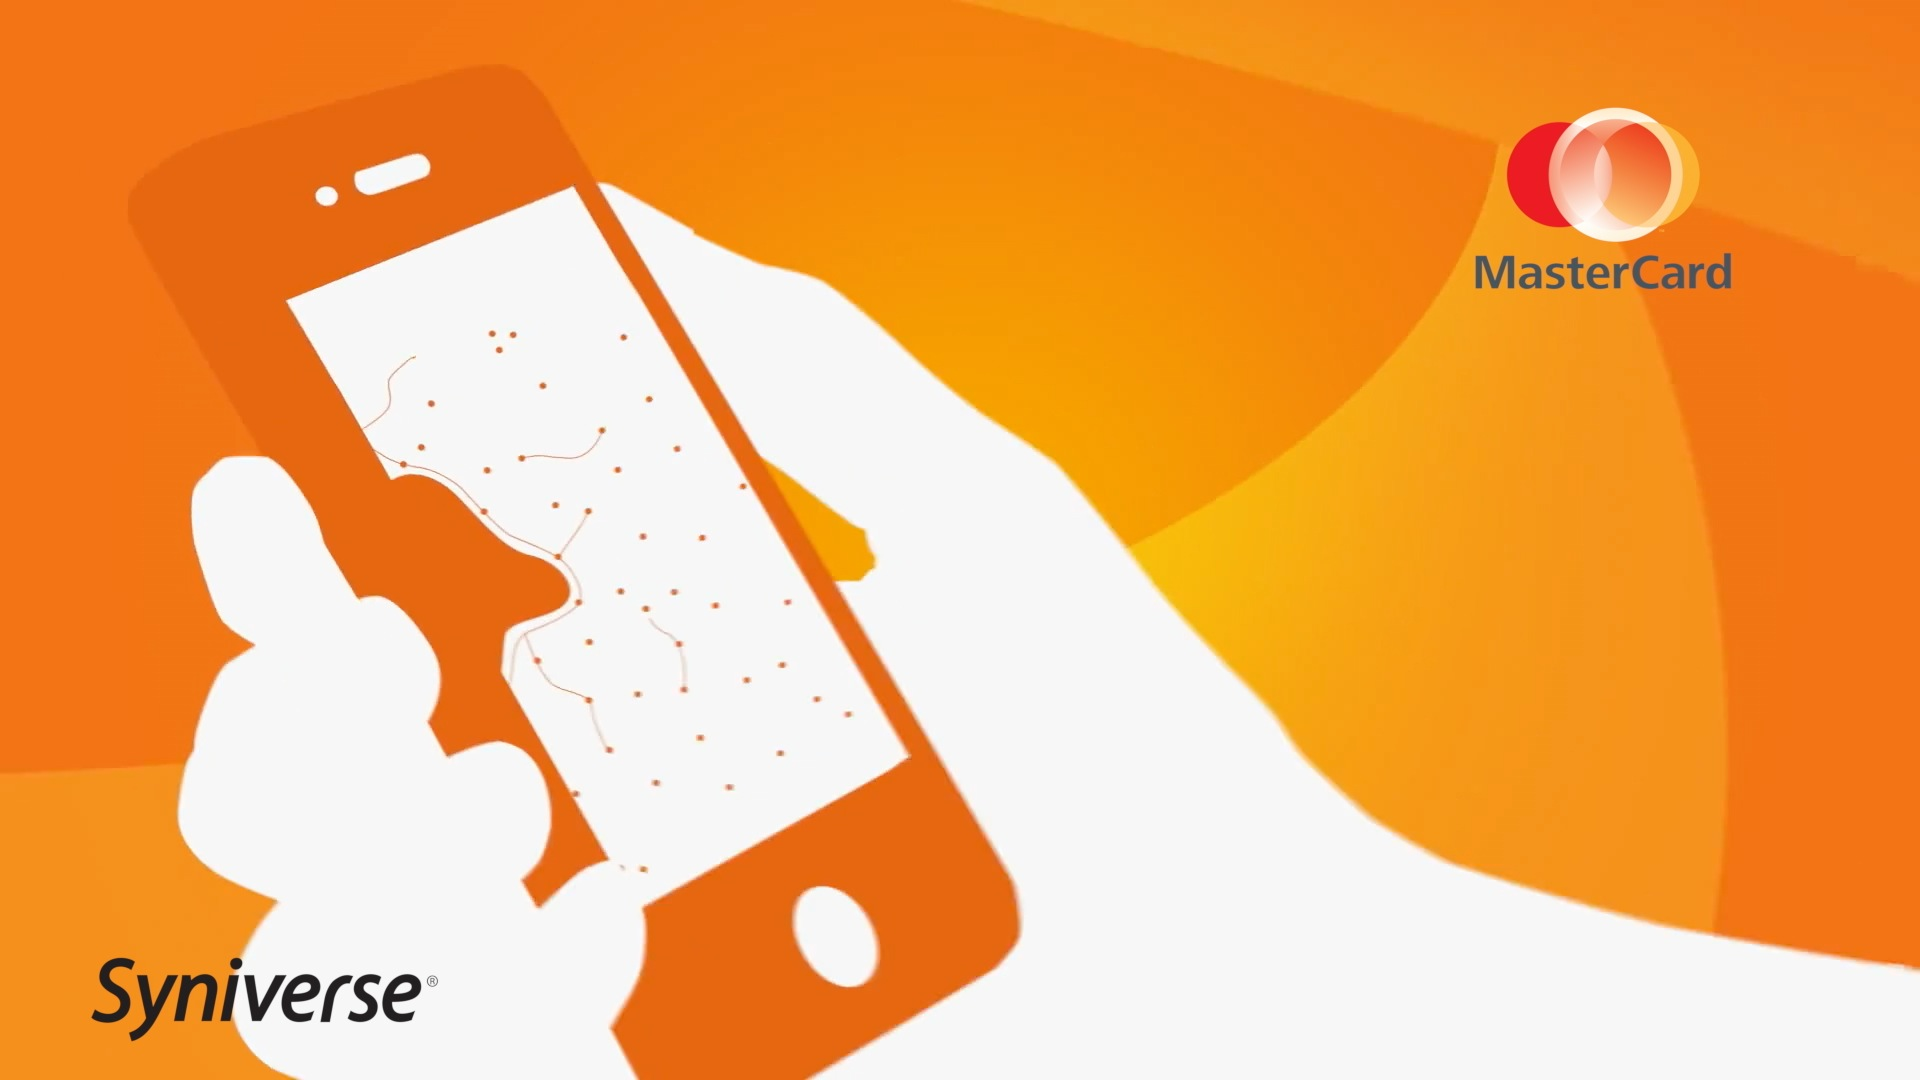 MasterCard and Syniverse put consumers in control of their mobile experience